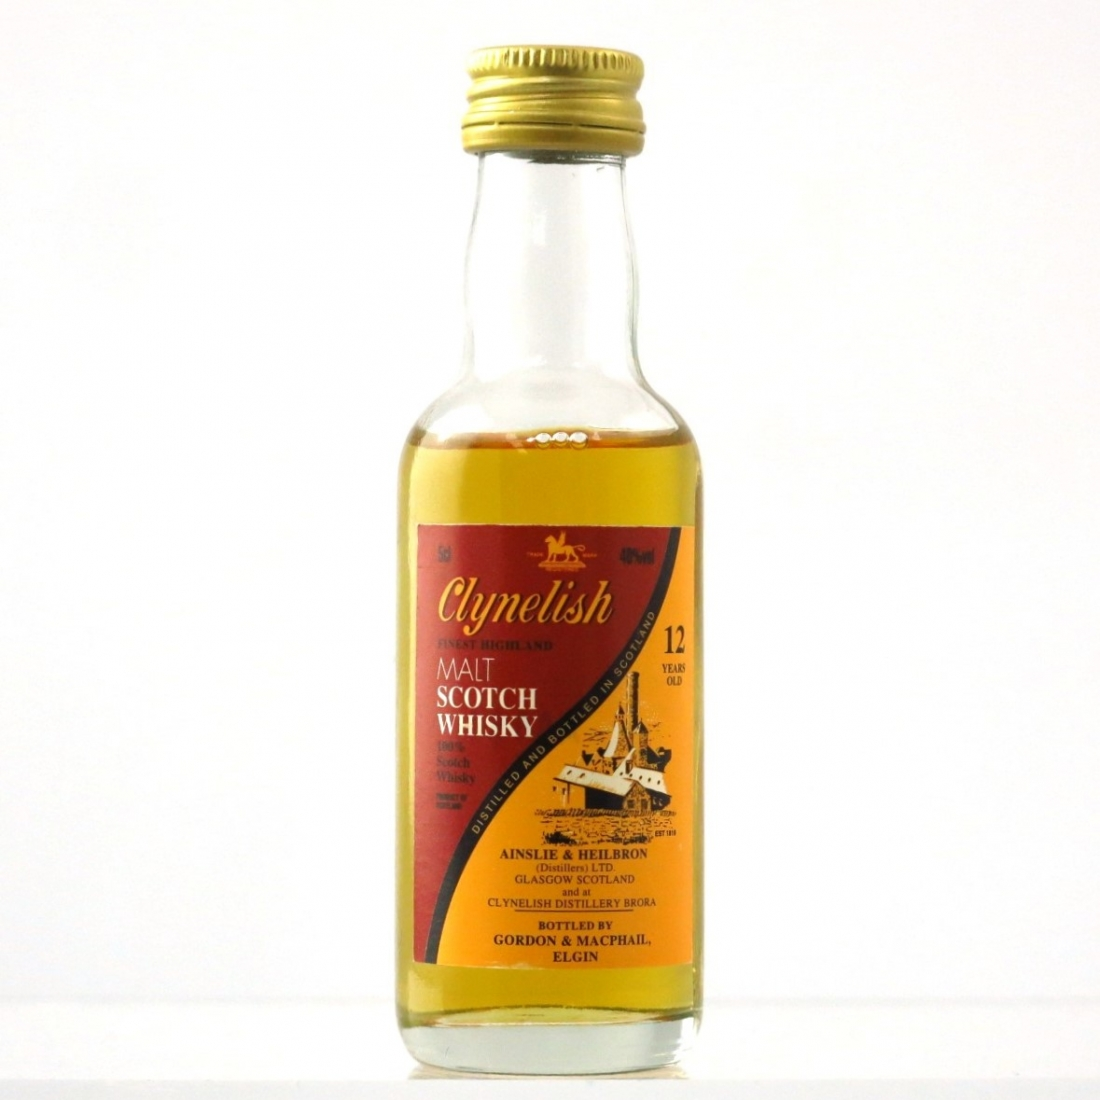 Clynelish 12 Year Old Ainsle and Heilbron 5cl Miniature